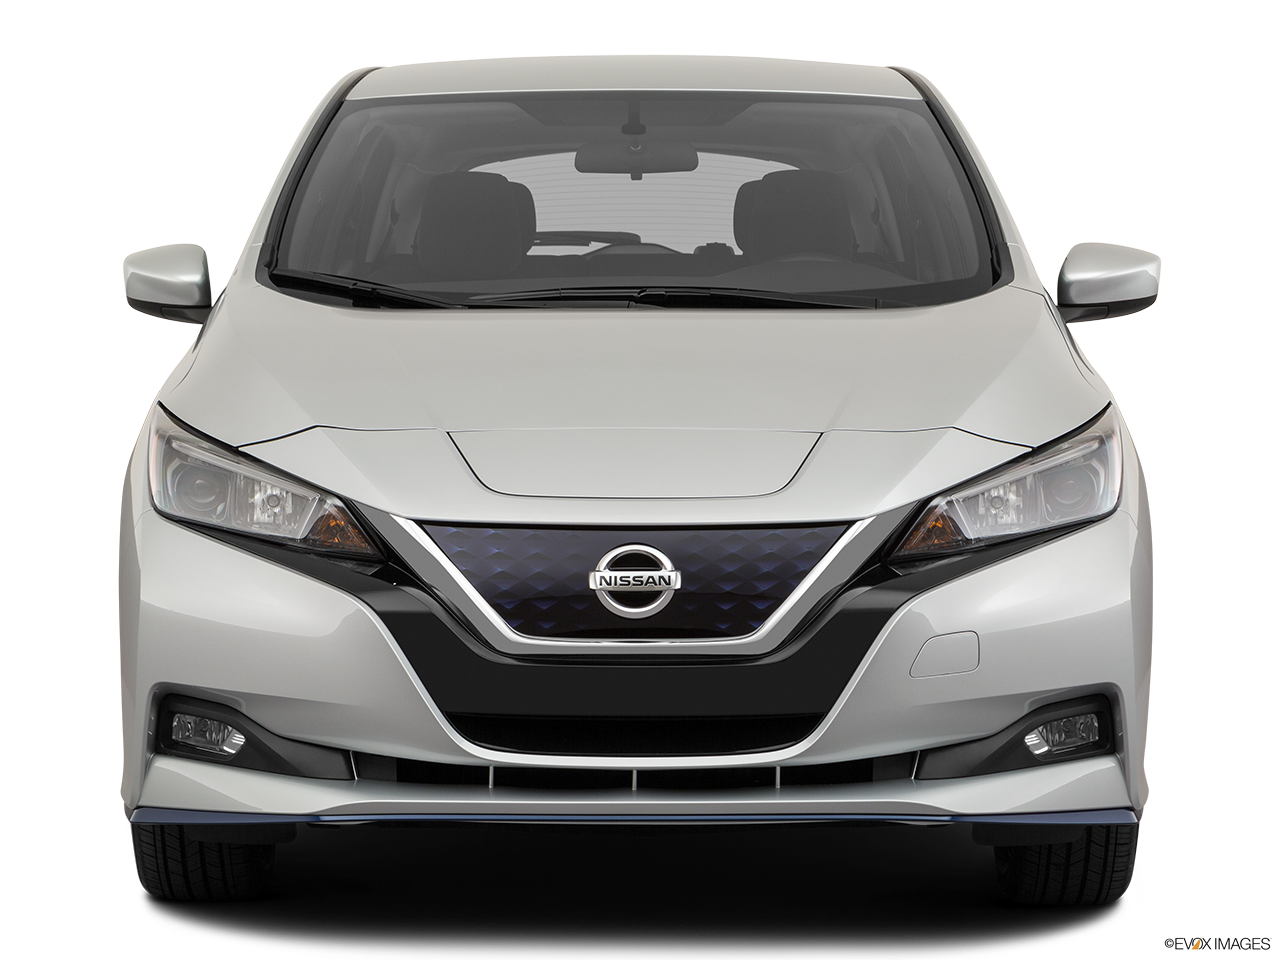 Front view of the Nissan LEAF